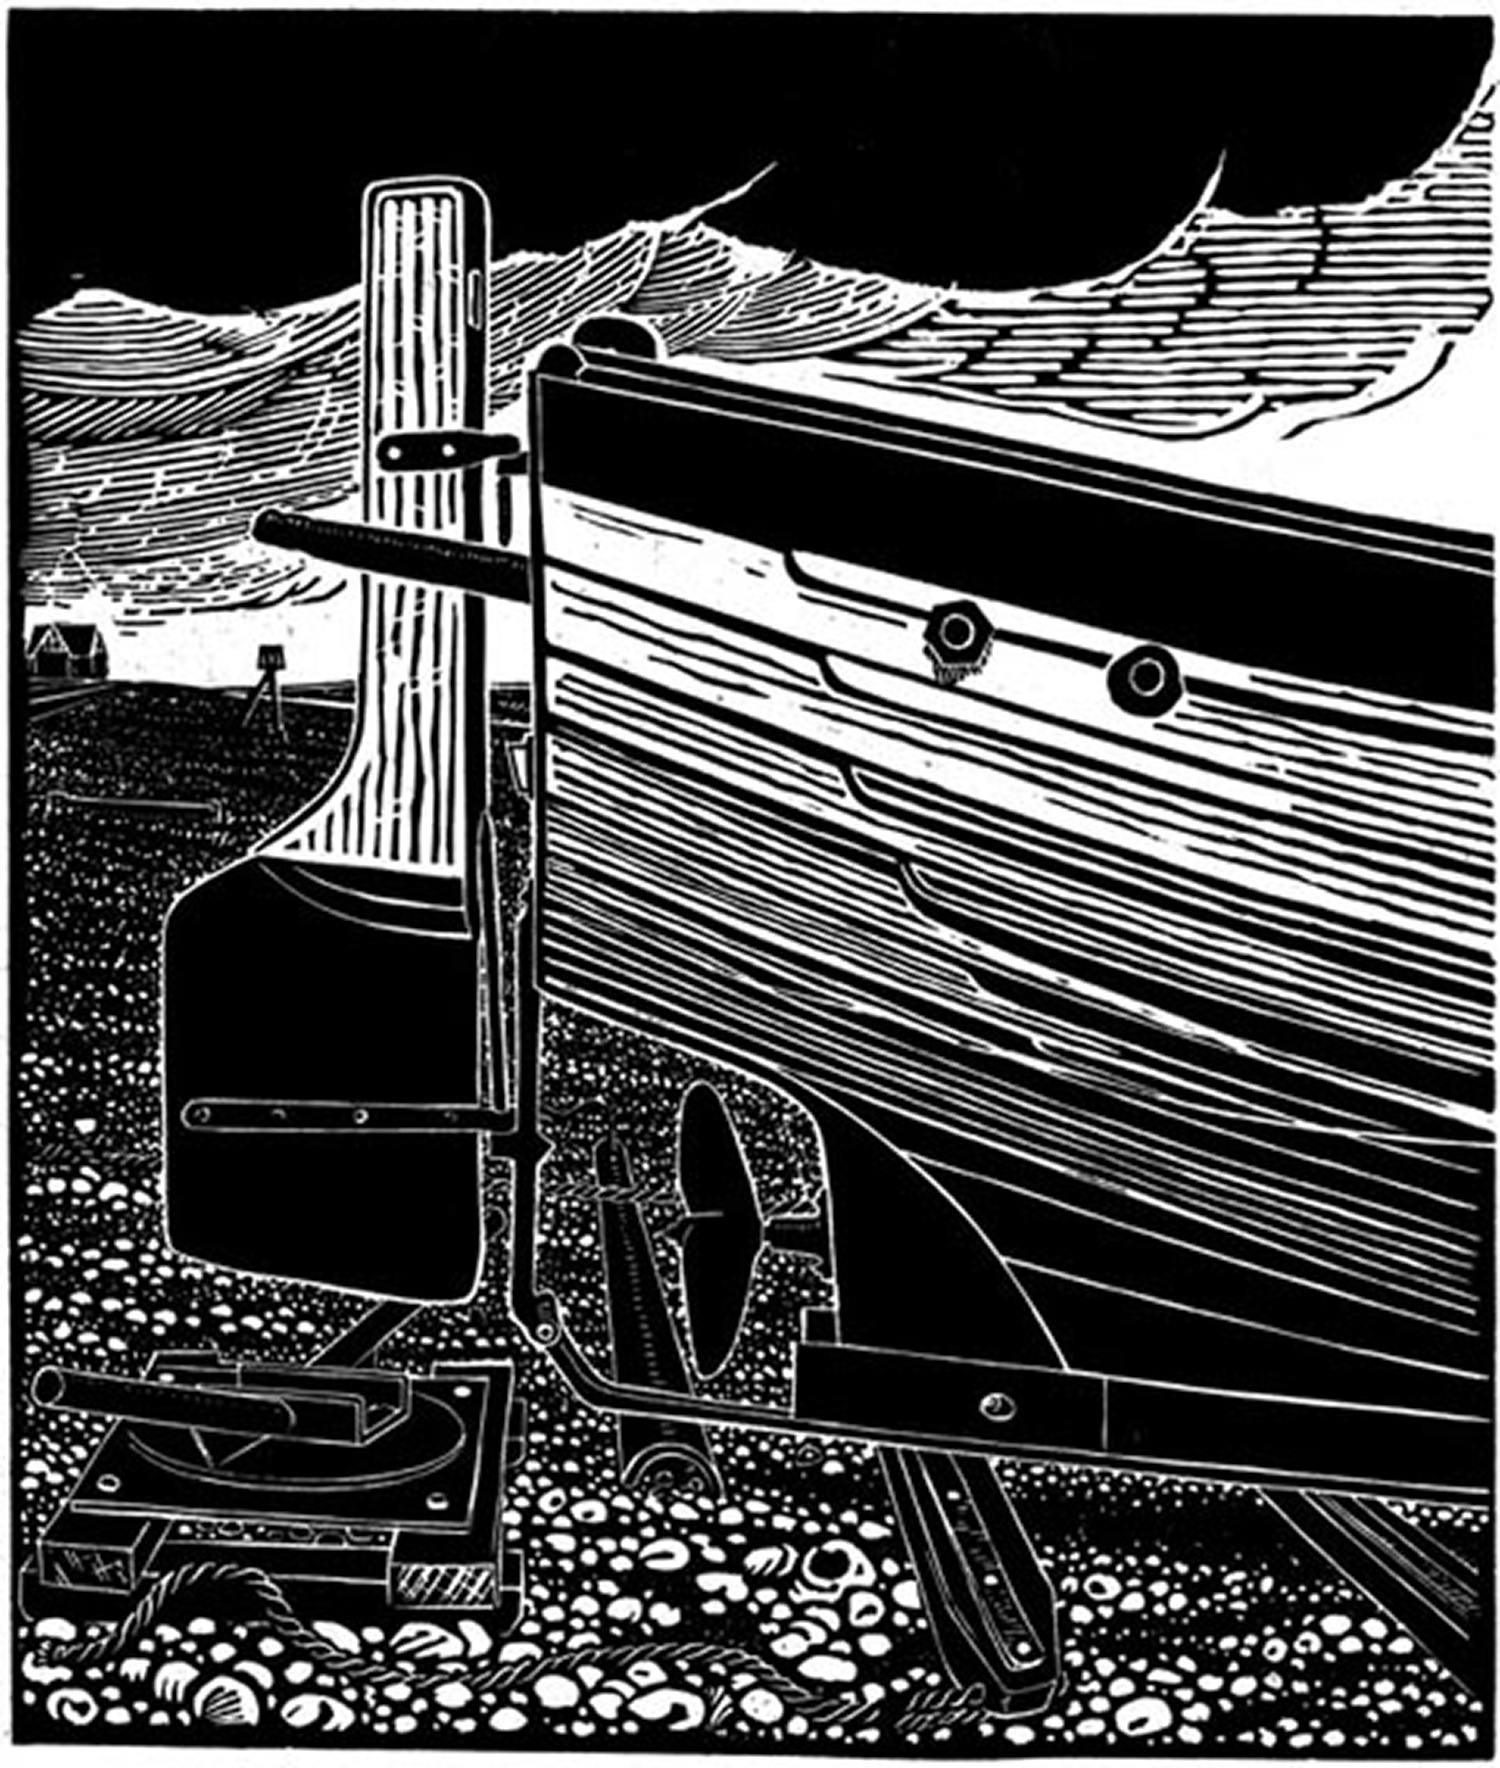 Stern of an Aldeburgh Beach  Boat by James Dodds